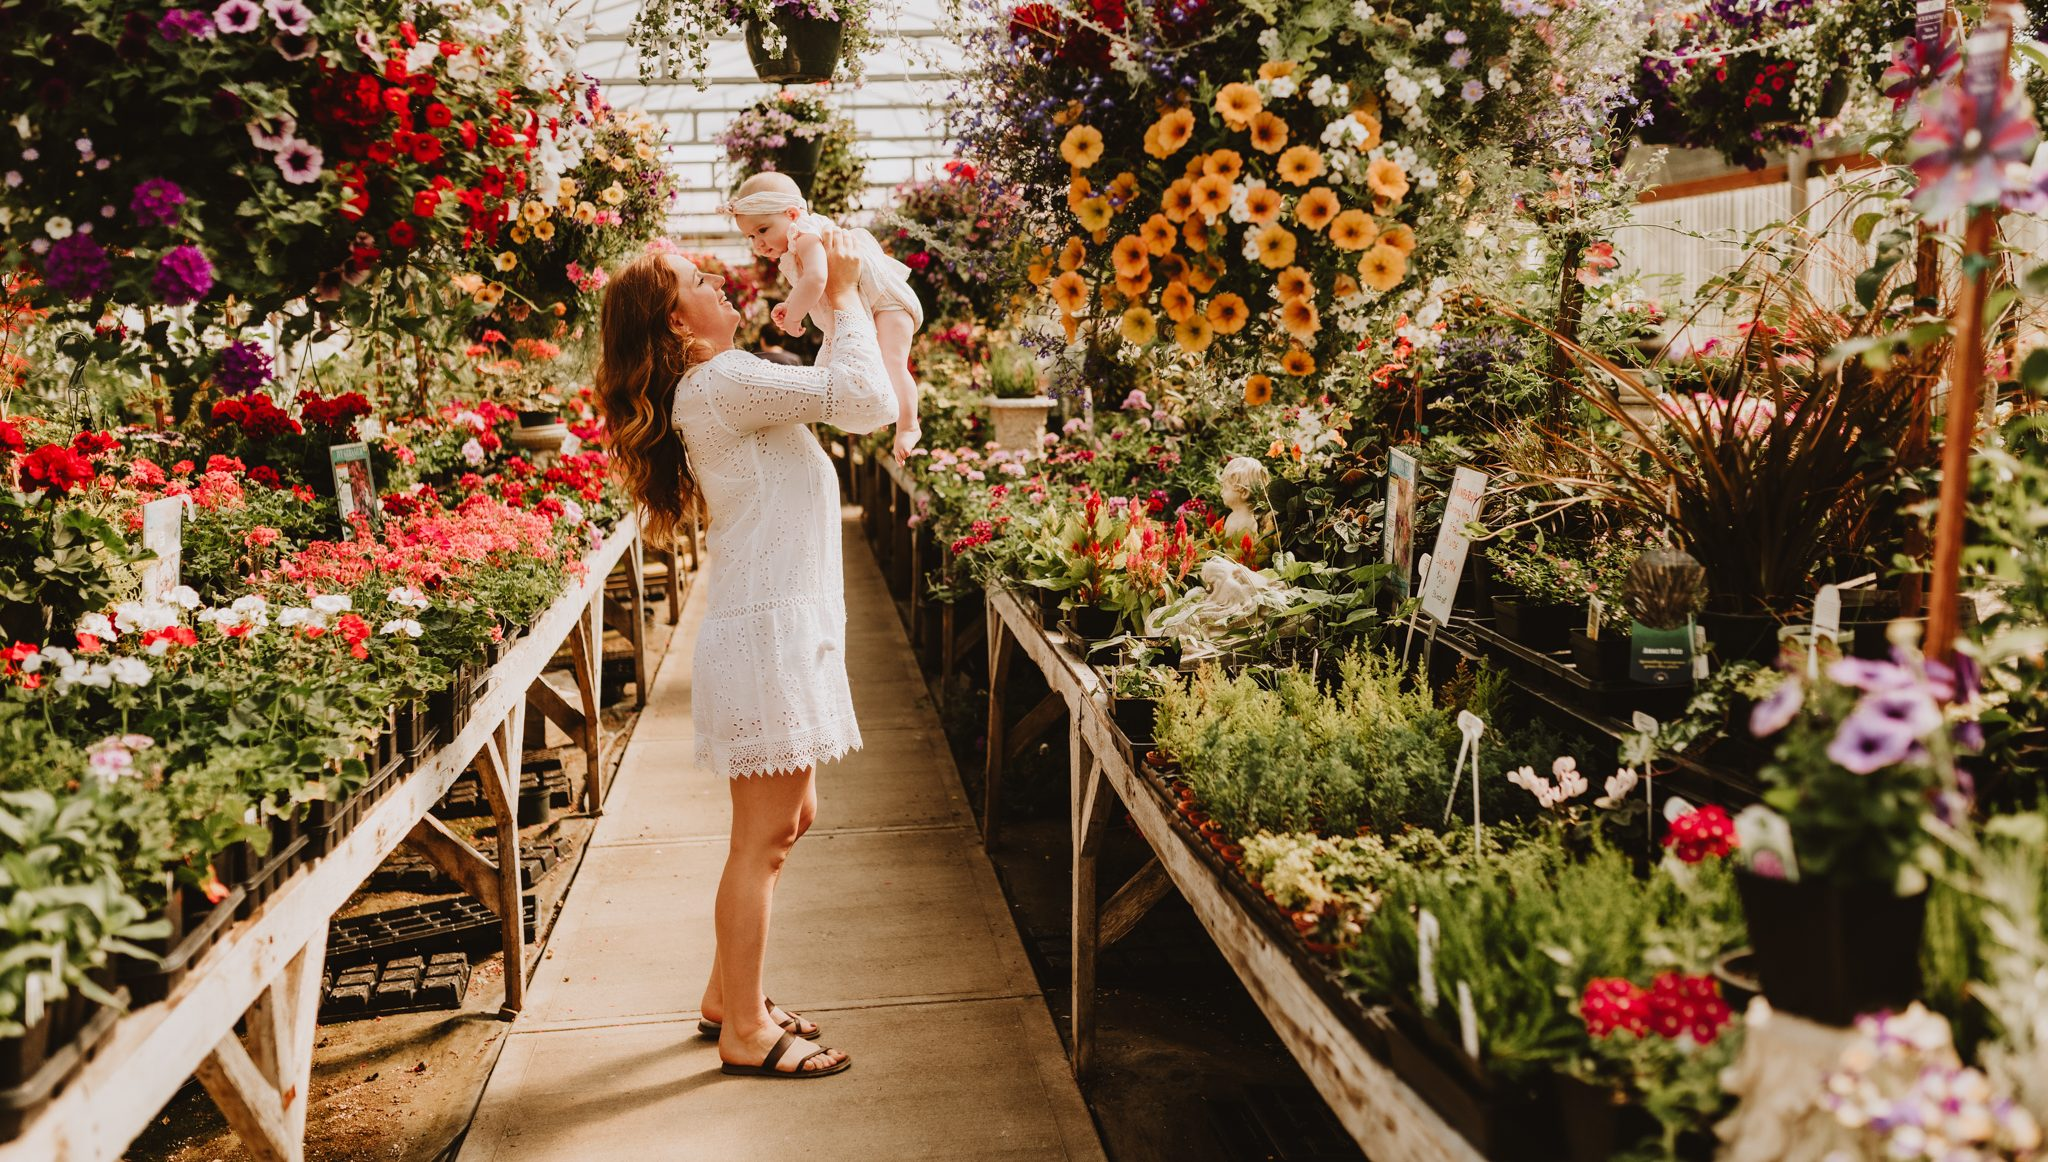 Mum holding up baby girl in front of flowers at garden centre during family photoshoot